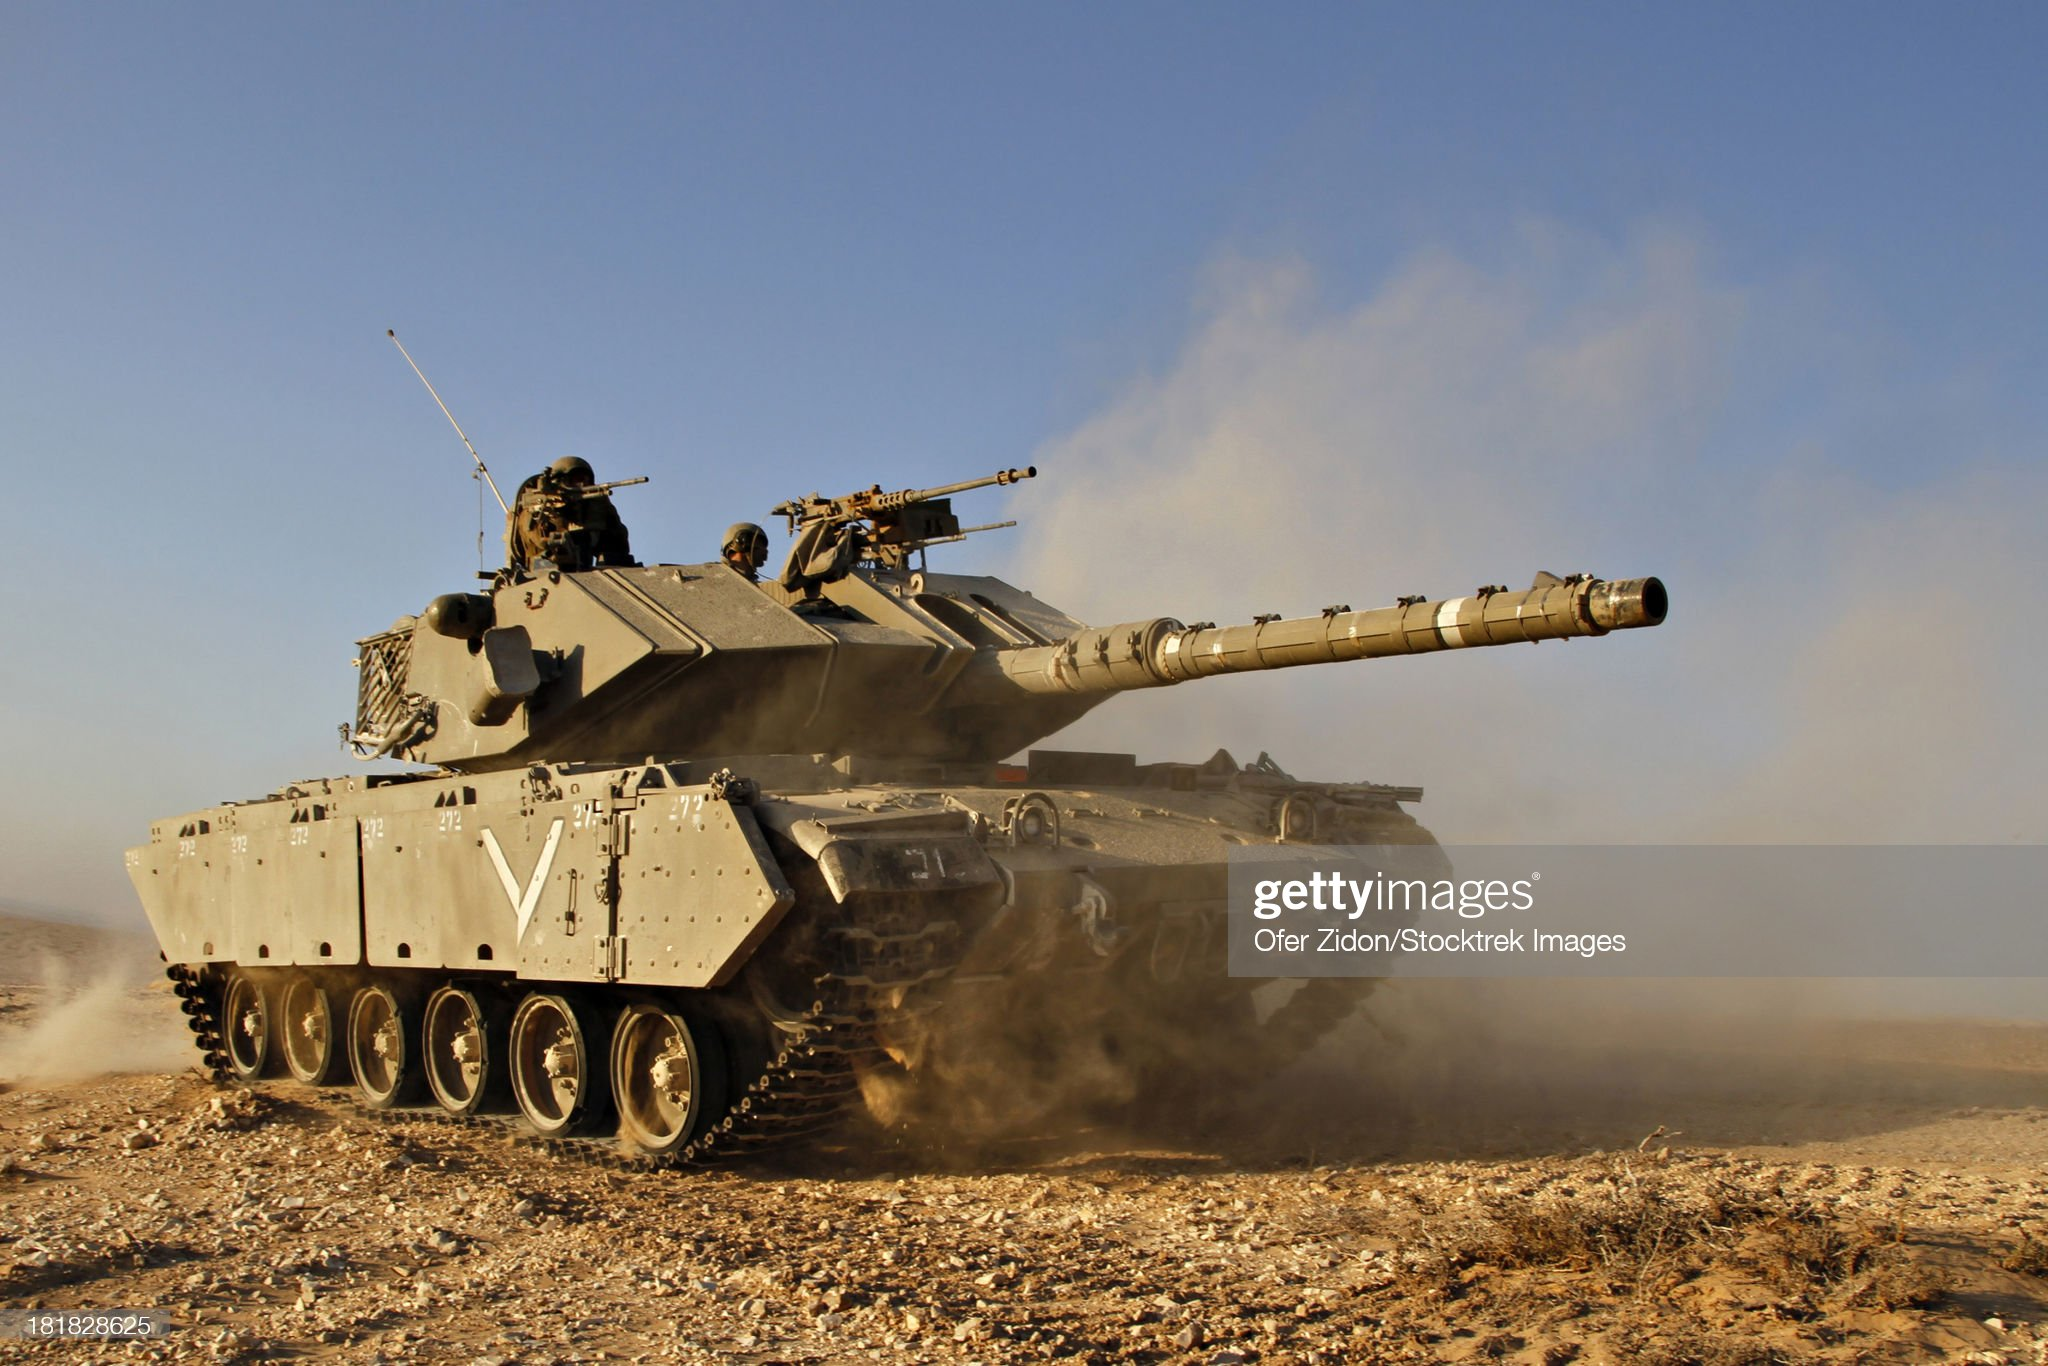 https://media.gettyimages.com/photos/an-israel-defense-force-magach-7-main-battle-tank-during-an-exercise-picture-id181828625?s=2048x2048